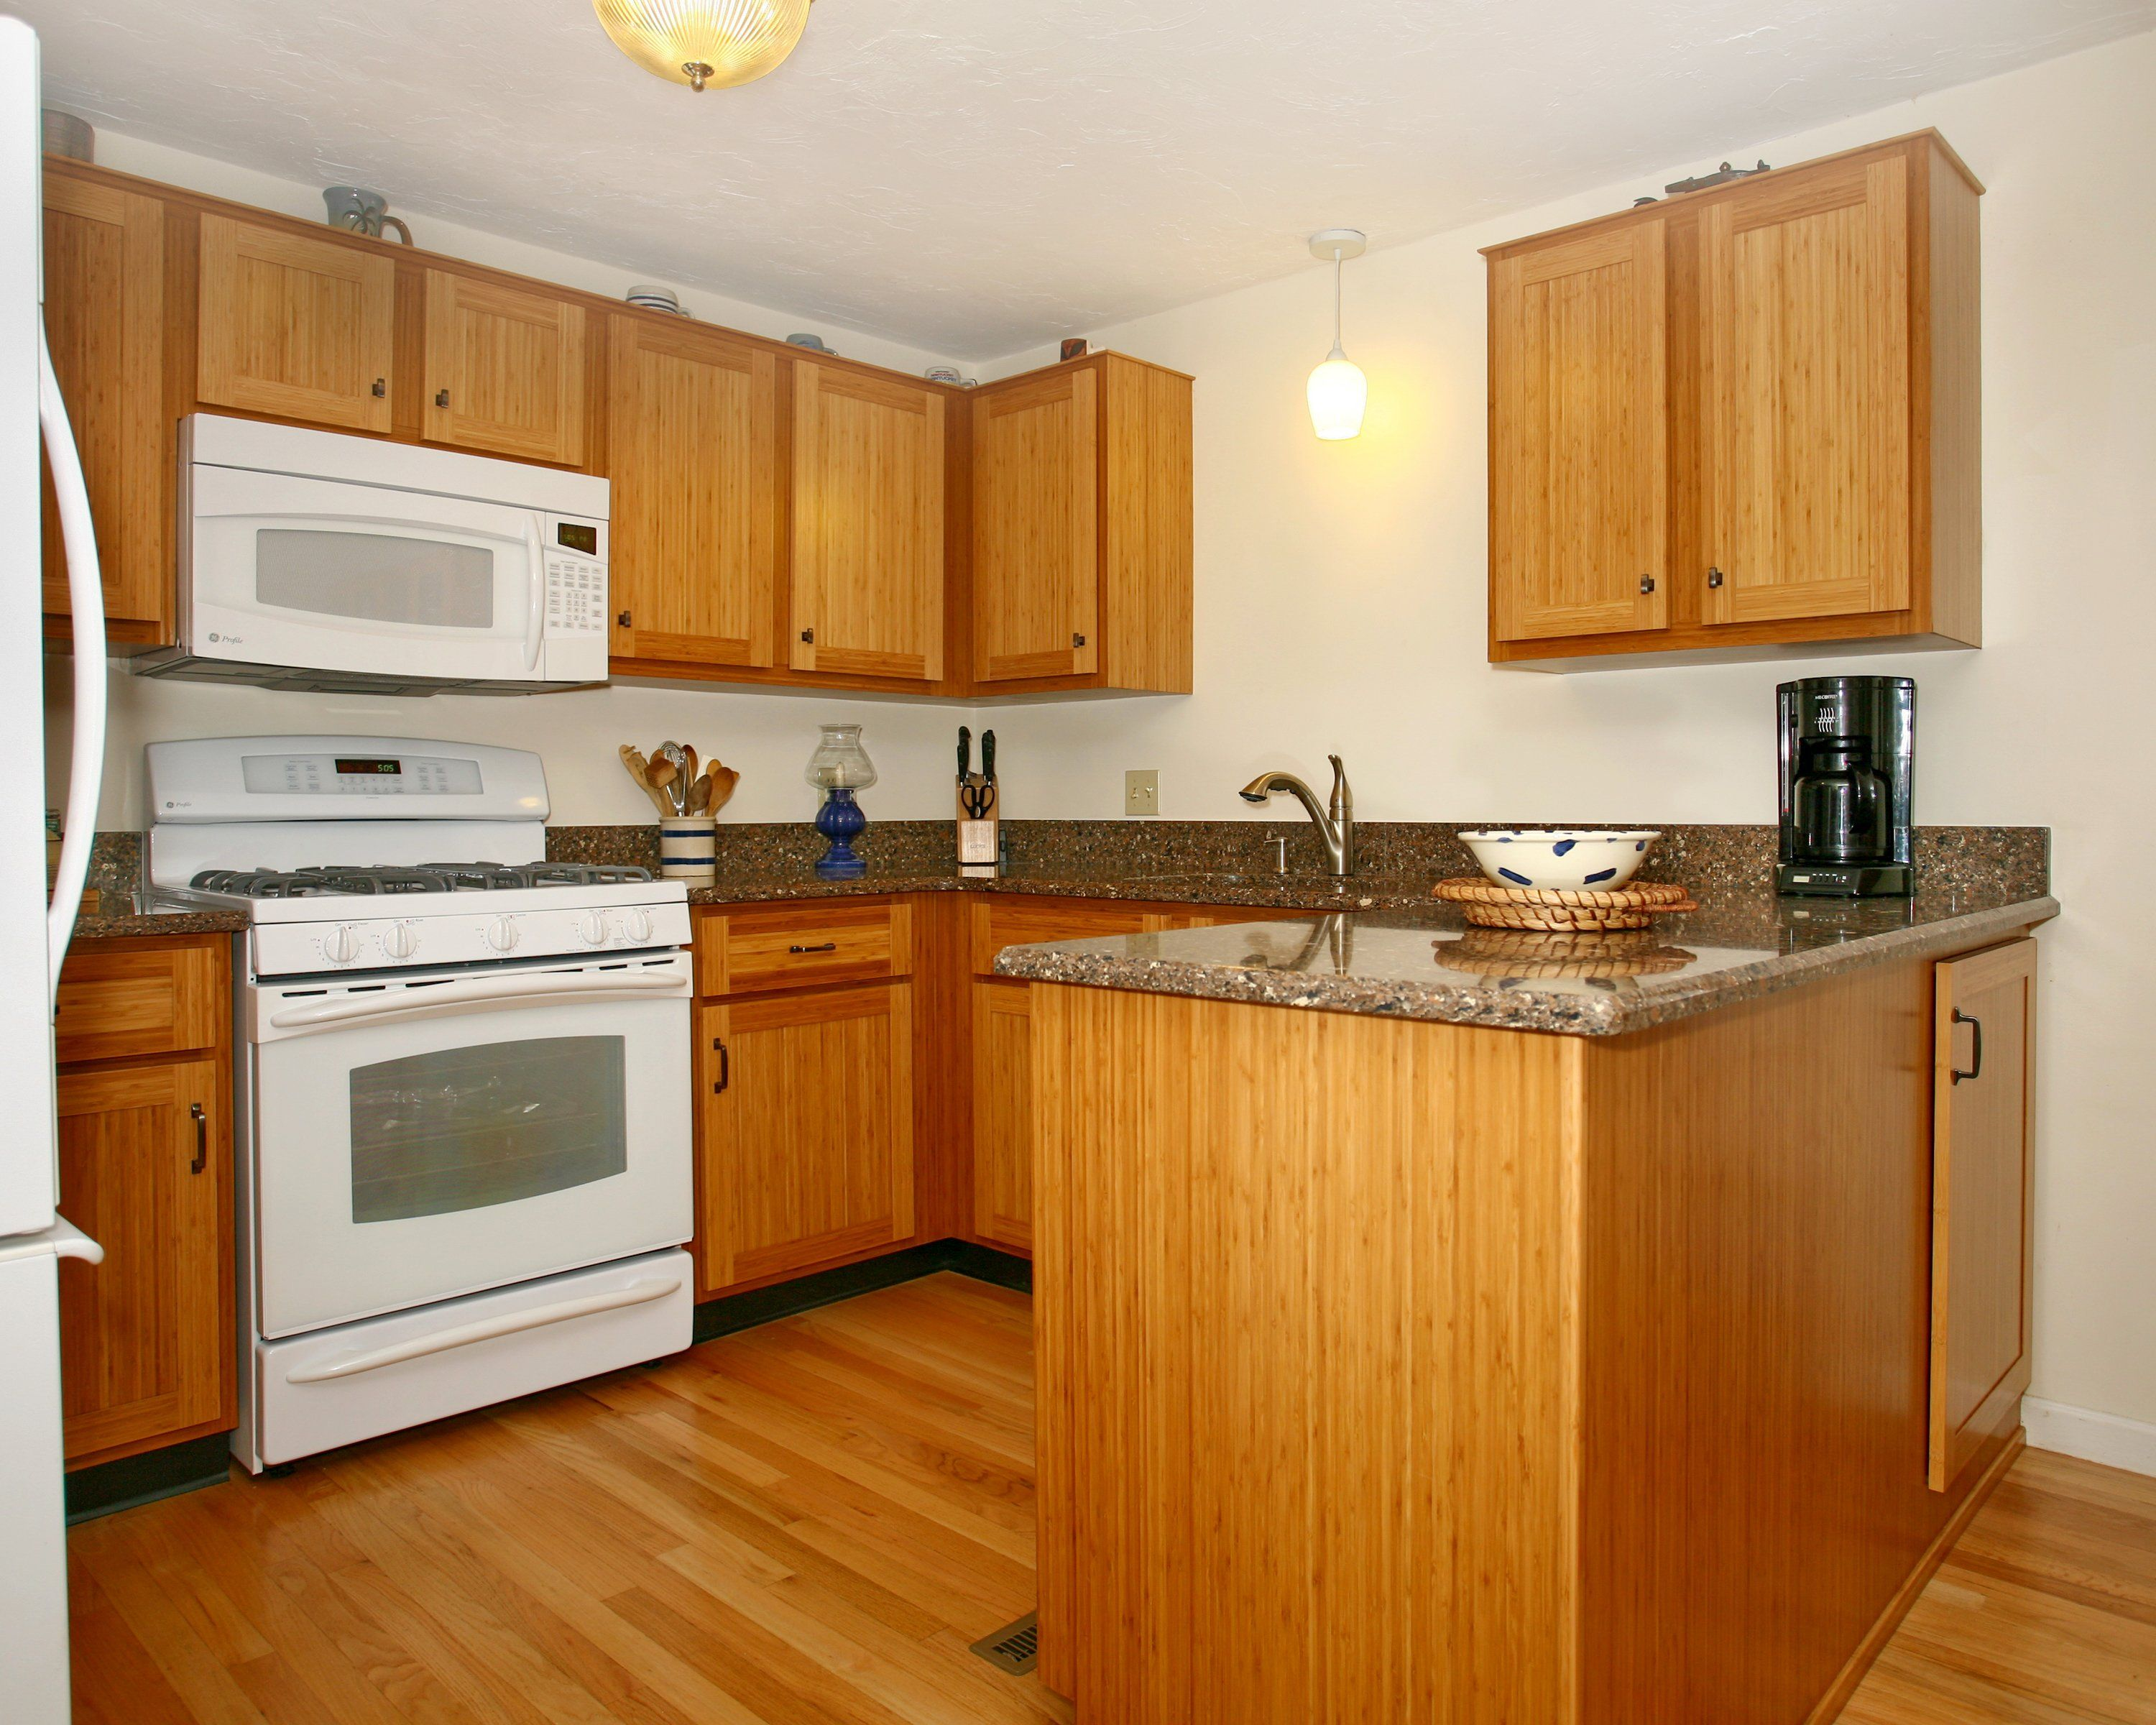 5 Traditional Kitchen Ideas From Ikea Cost Of Kitchen Cabinets Bamboo Kitchen Cabinets Wooden Kitchen Cabinets